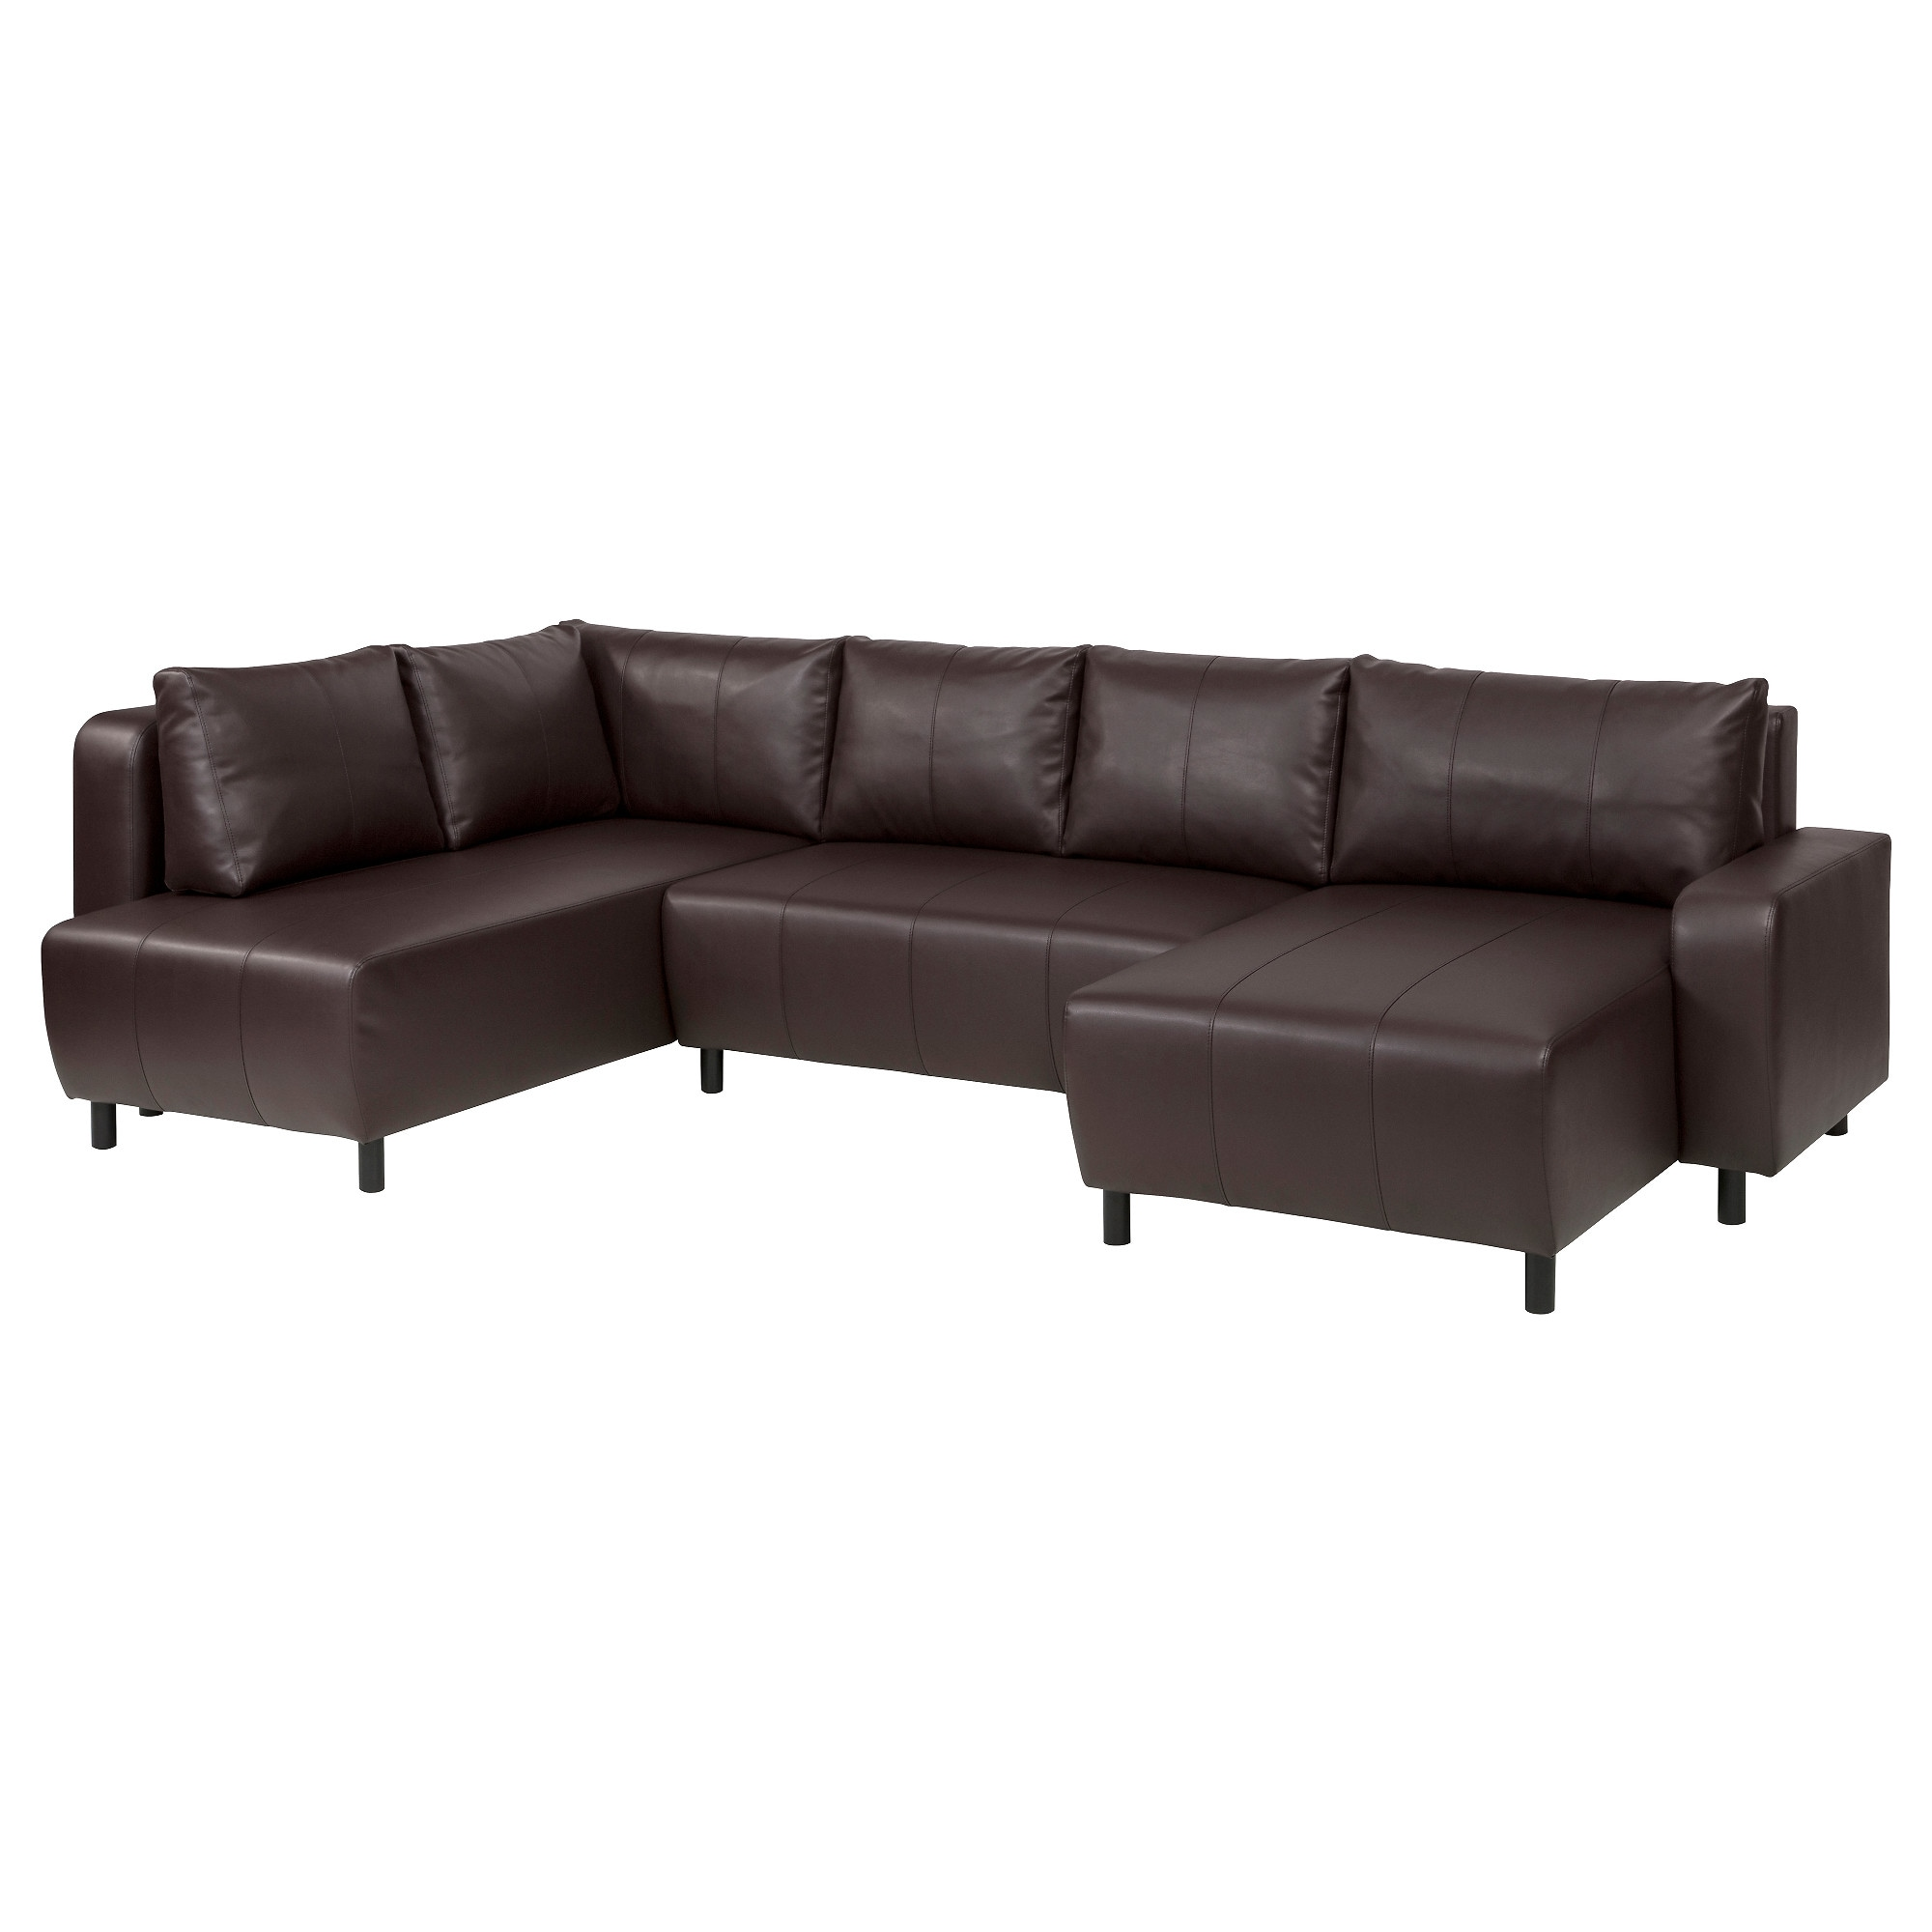 Brown chaise sofa sofa menzilperde net for Brown sectional with chaise